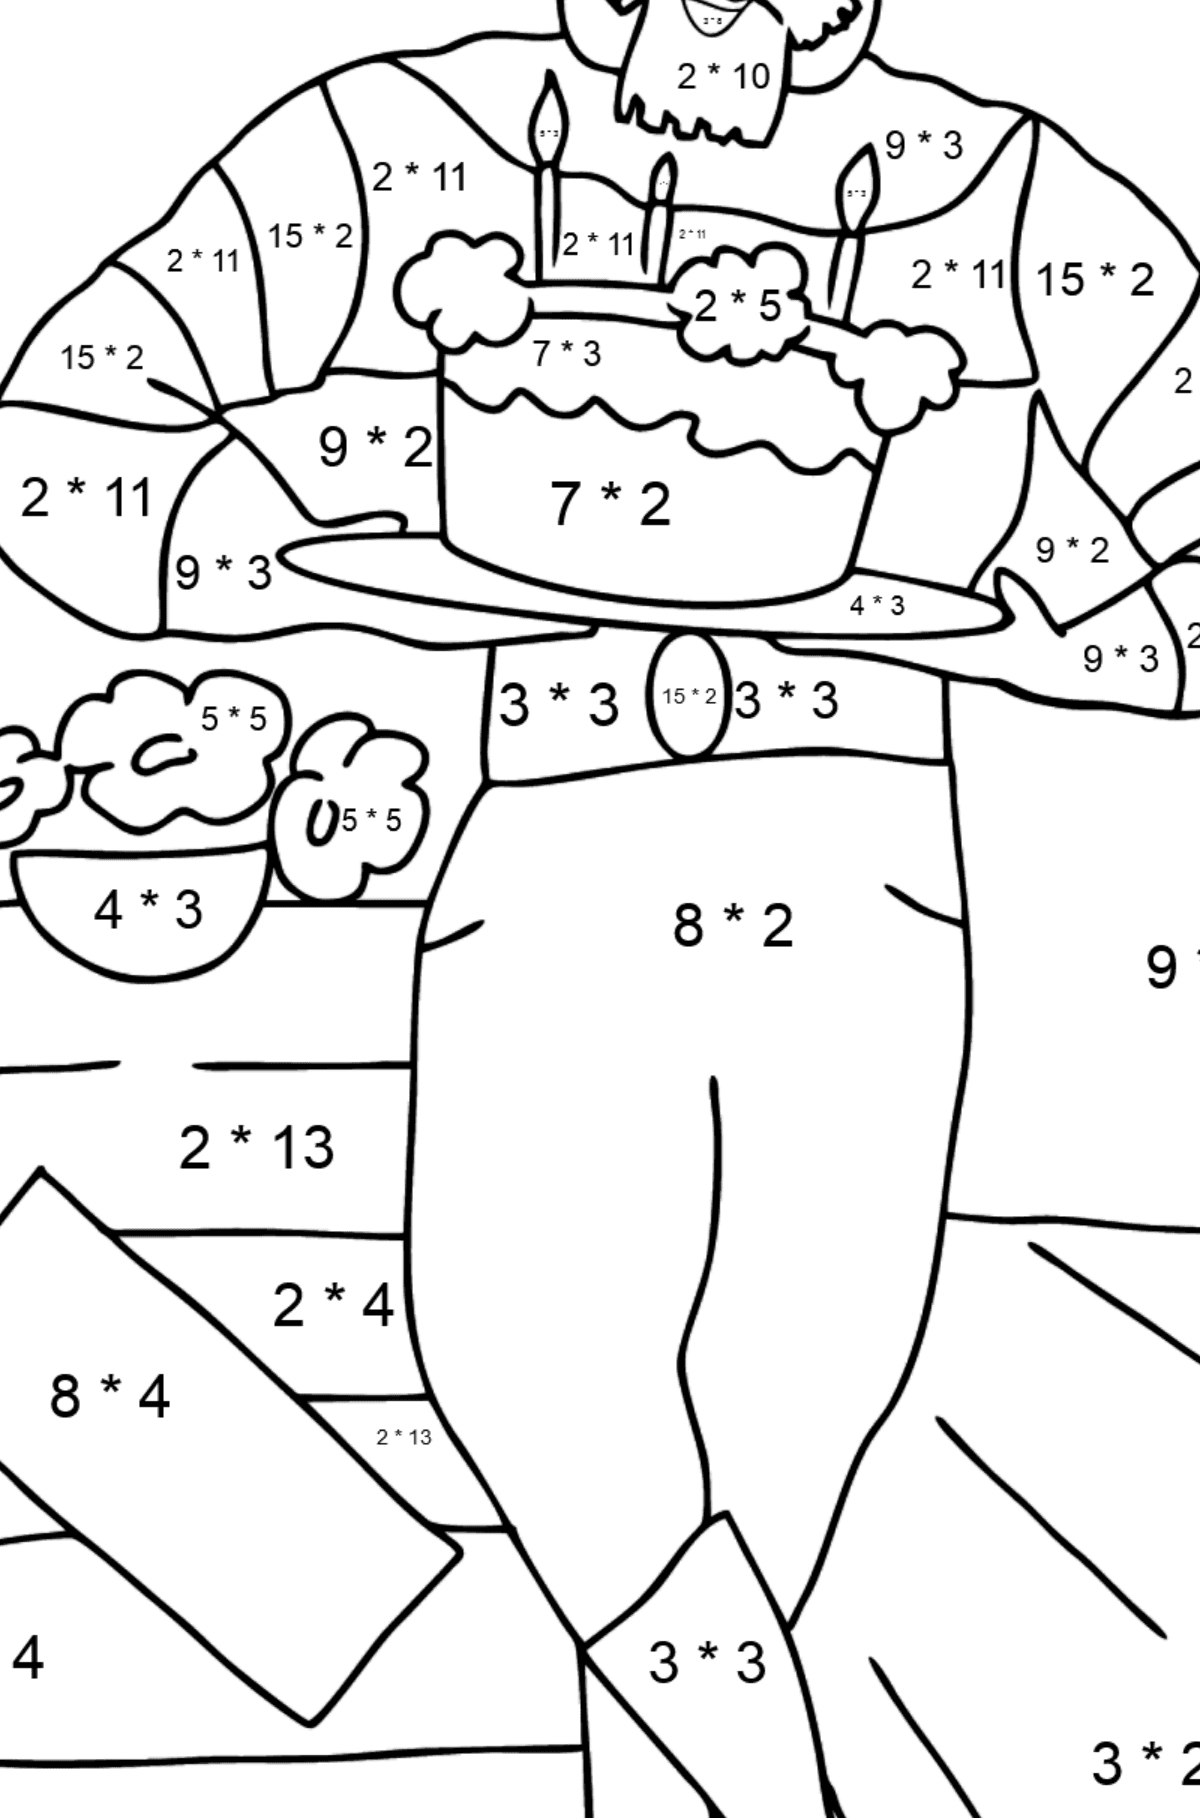 Coloring Page - A Pirate with Cake - Math Coloring - Multiplication for Kids